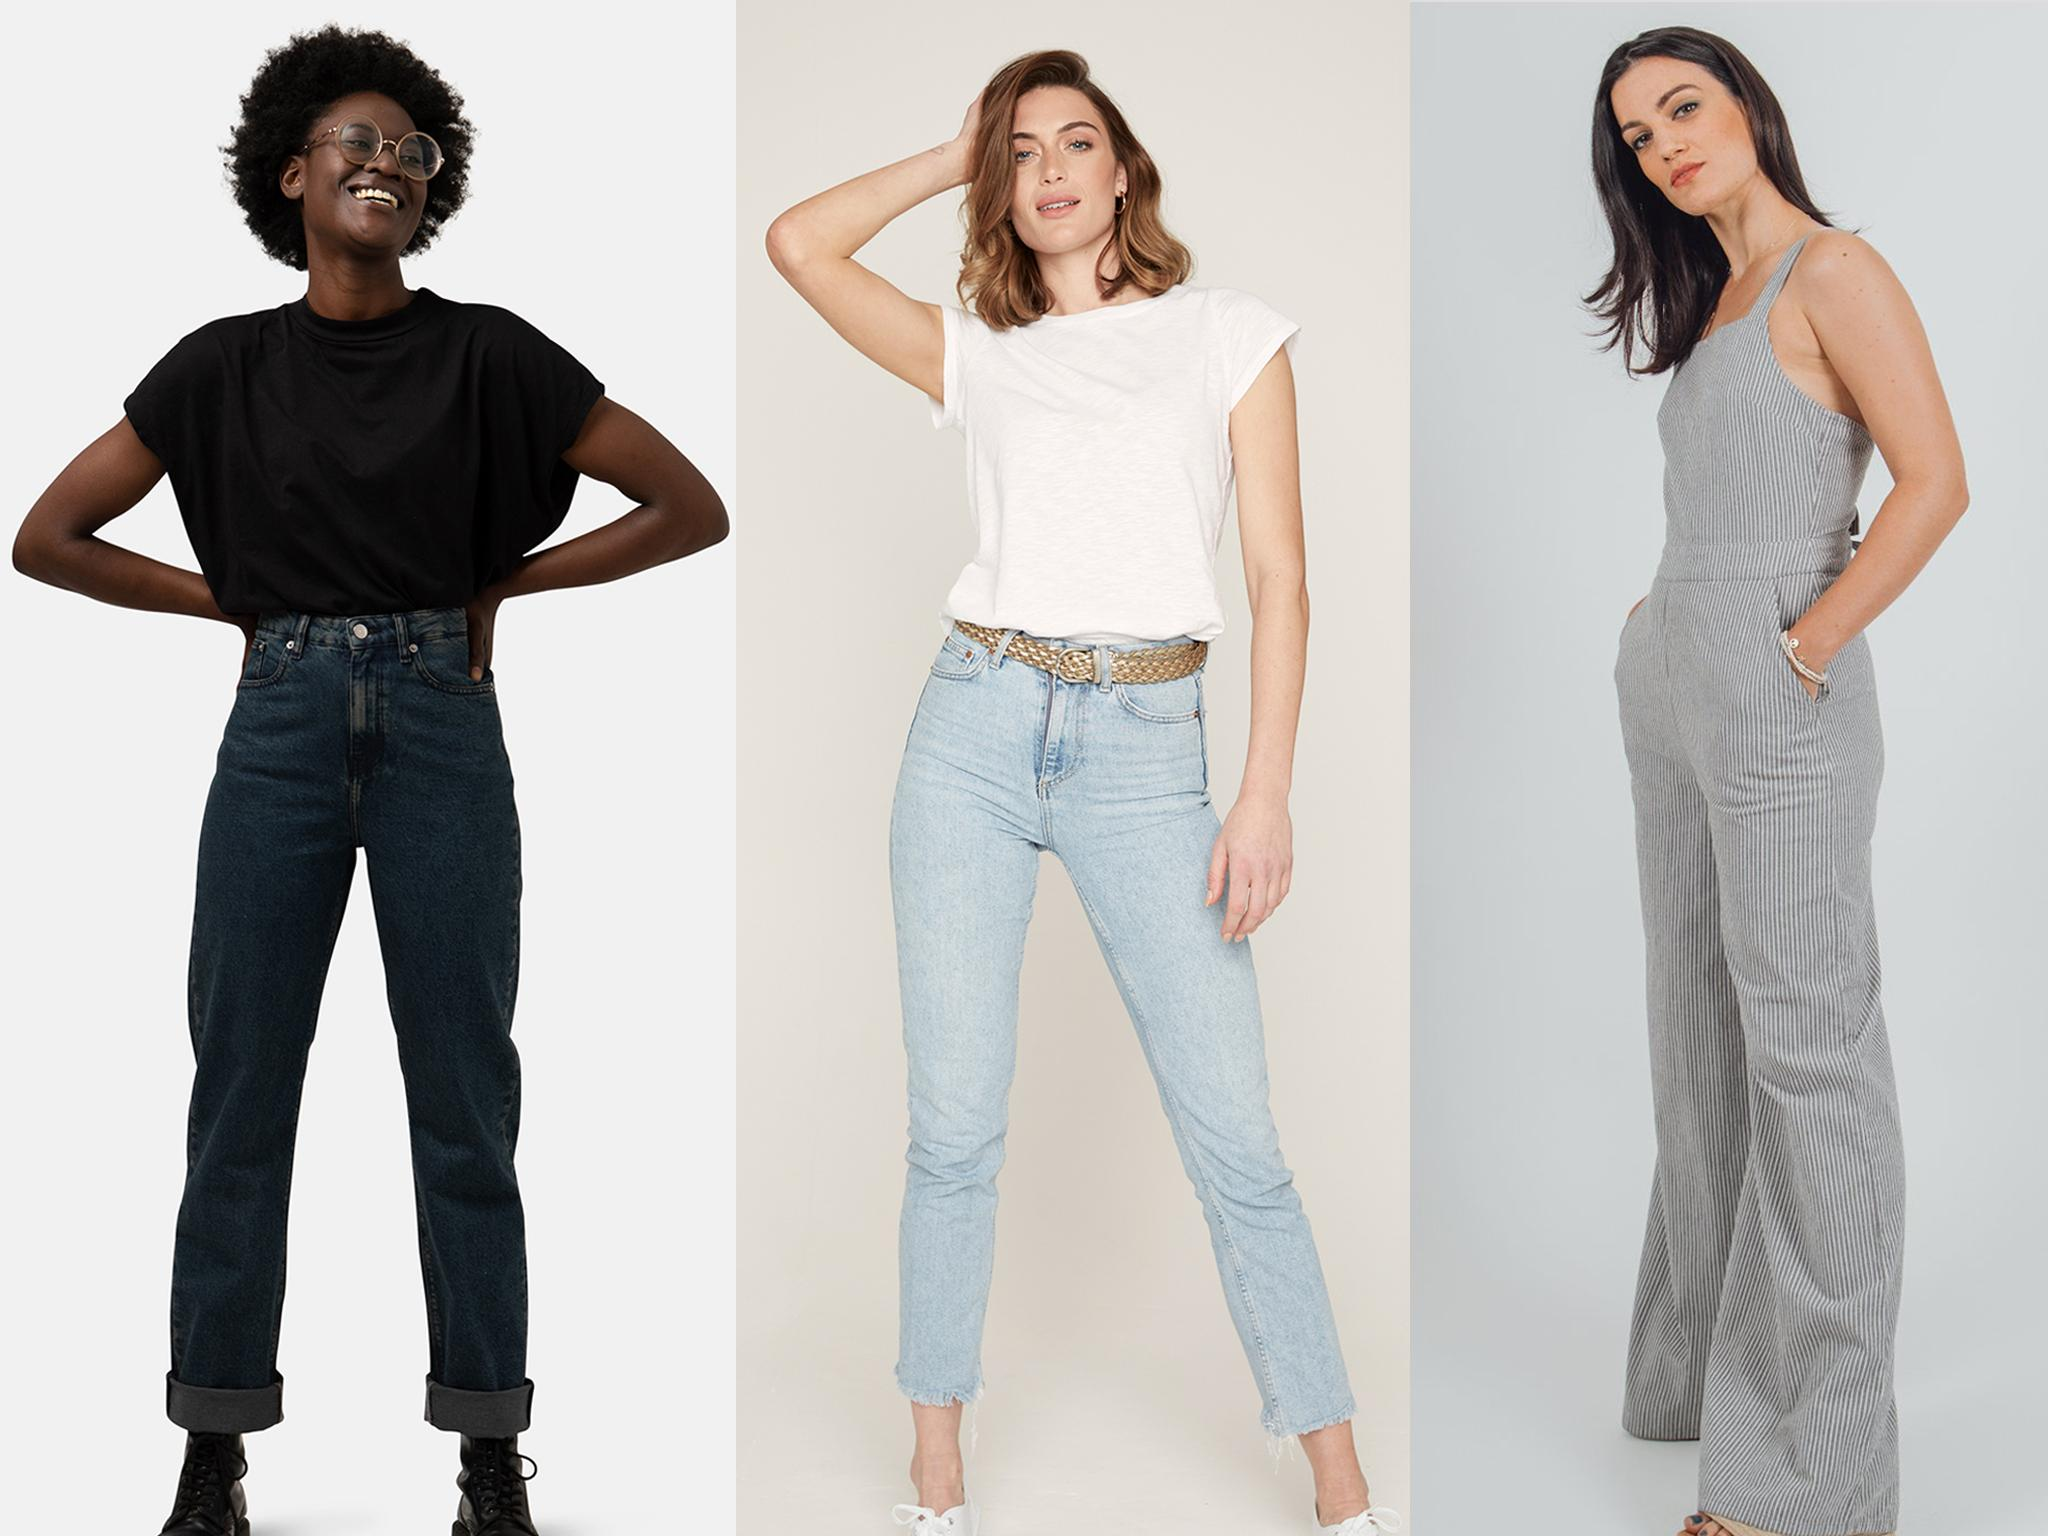 Plastic Free July Best Sustainable Clothing Brands For Women That Are Ethical And Stylish The Independent The Independent